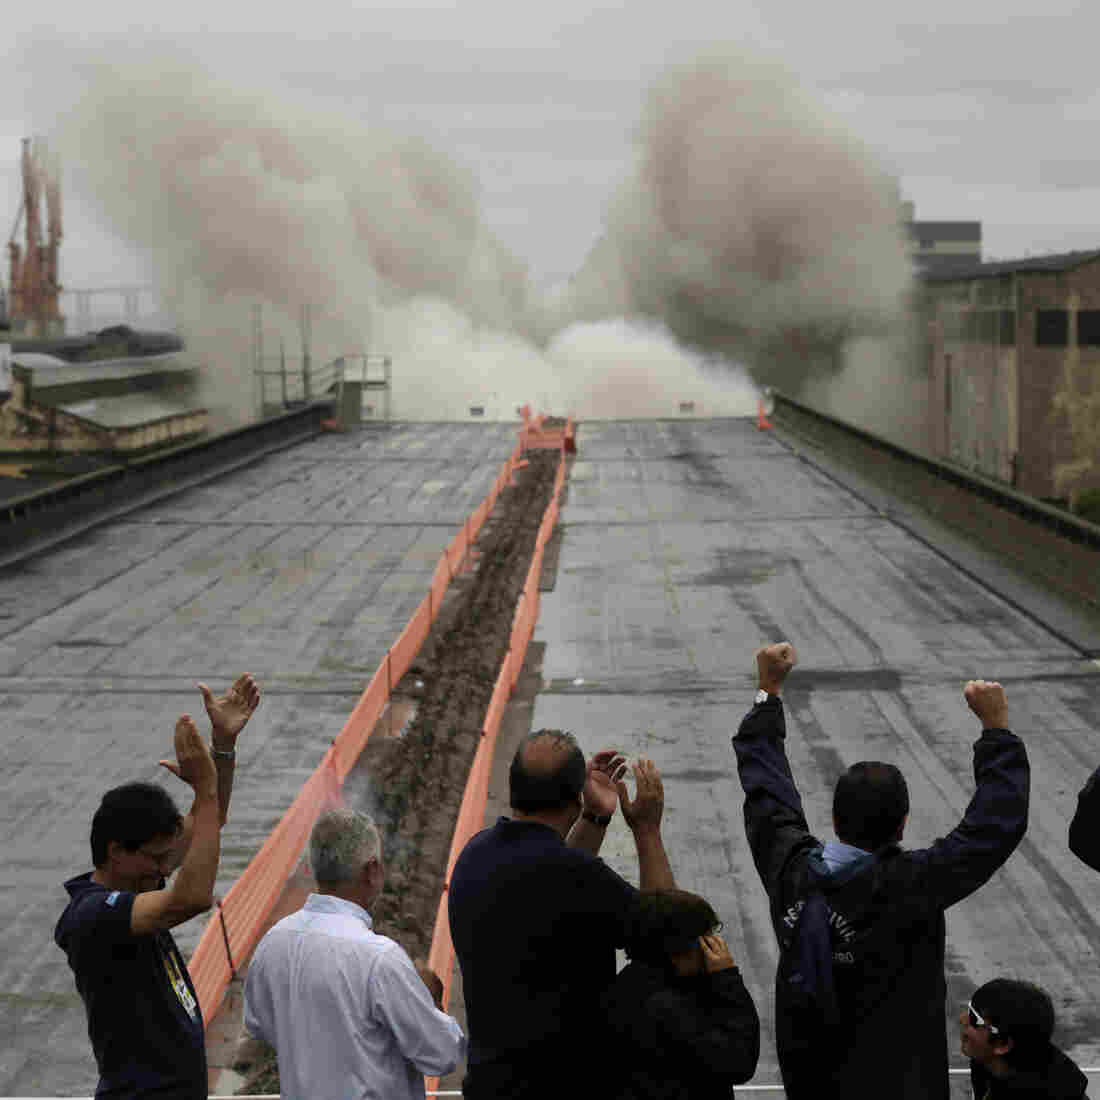 Local authorities celebrate a demolition explosion that's part of Rio's Porto Maravilha urbanization project, in Rio de Janeiro, on Nov. 24, 2013. The state- and federal-supported project is part of the city's redevelopment ahead of the 2016 Summer Olympic Games.